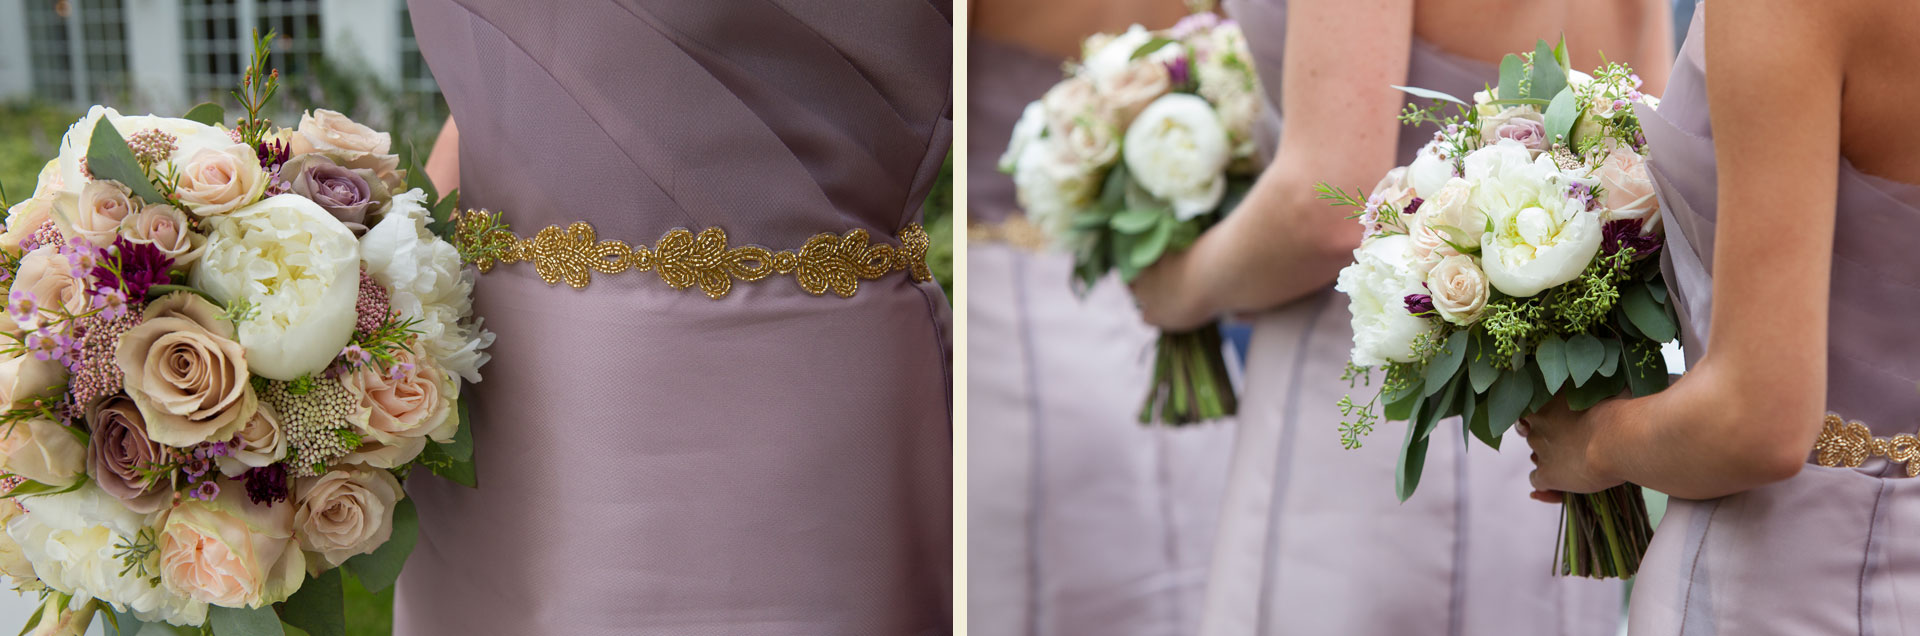 gold belt blush pink bouquets bridesmaid dresses